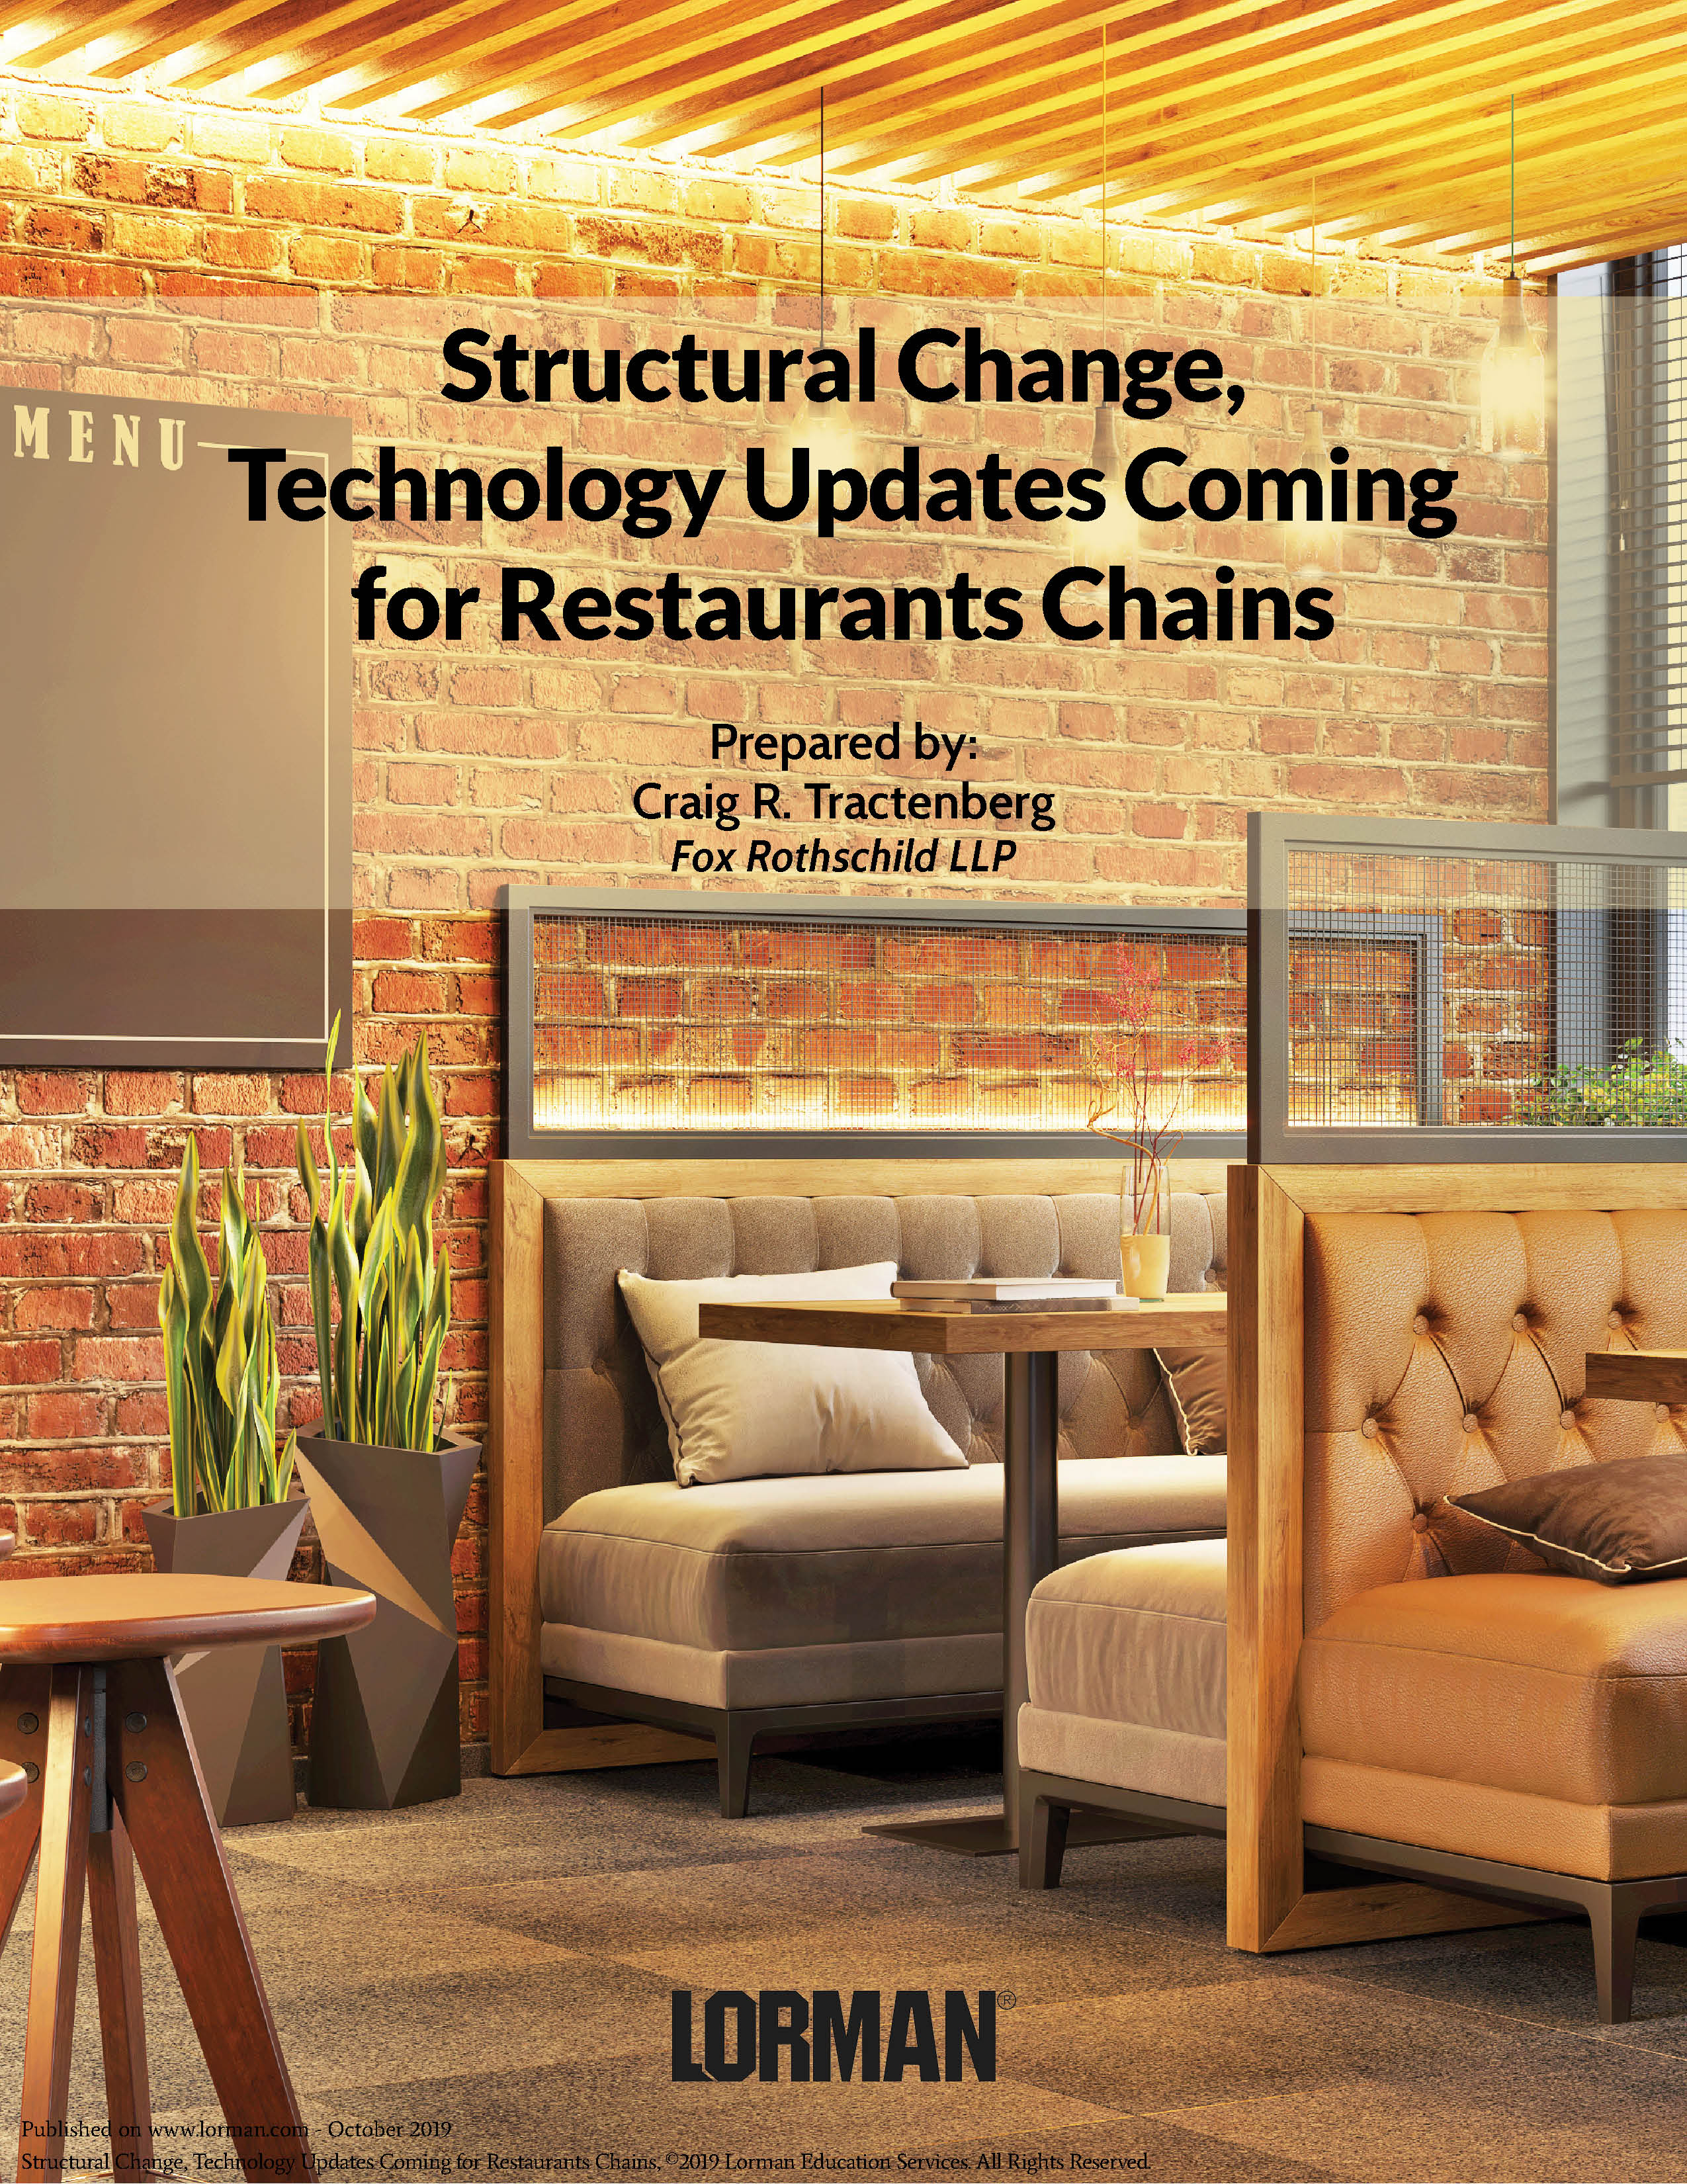 Structural Change, Technology Updates Coming for Restaurants Chains